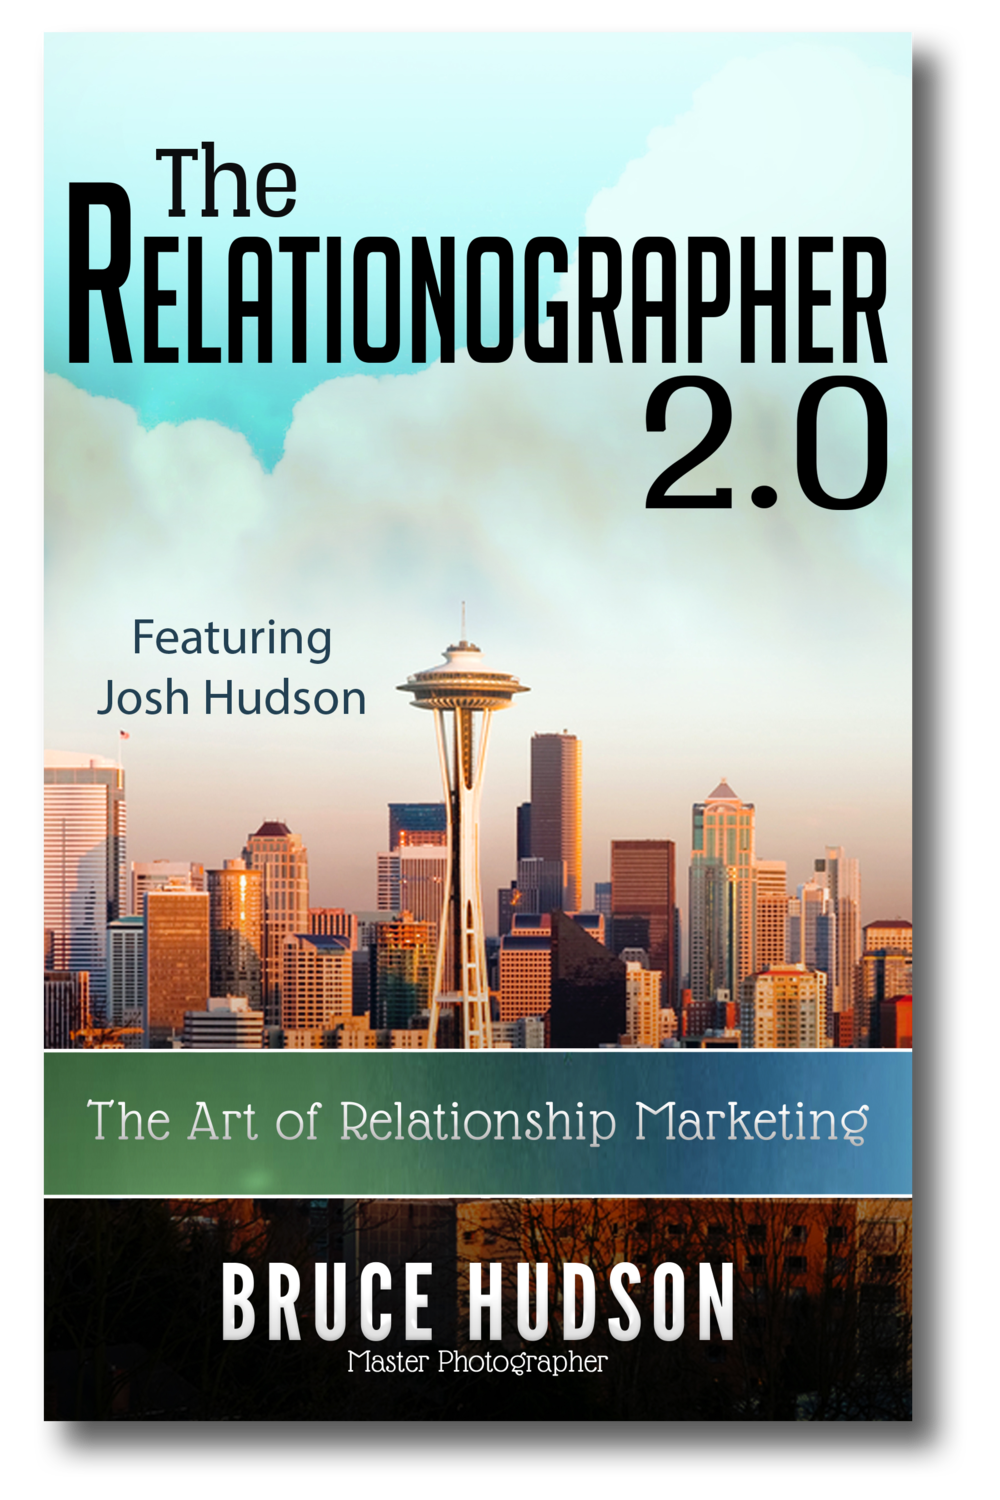 The Relationographer 2.0: The Art Of Relationship Marketing